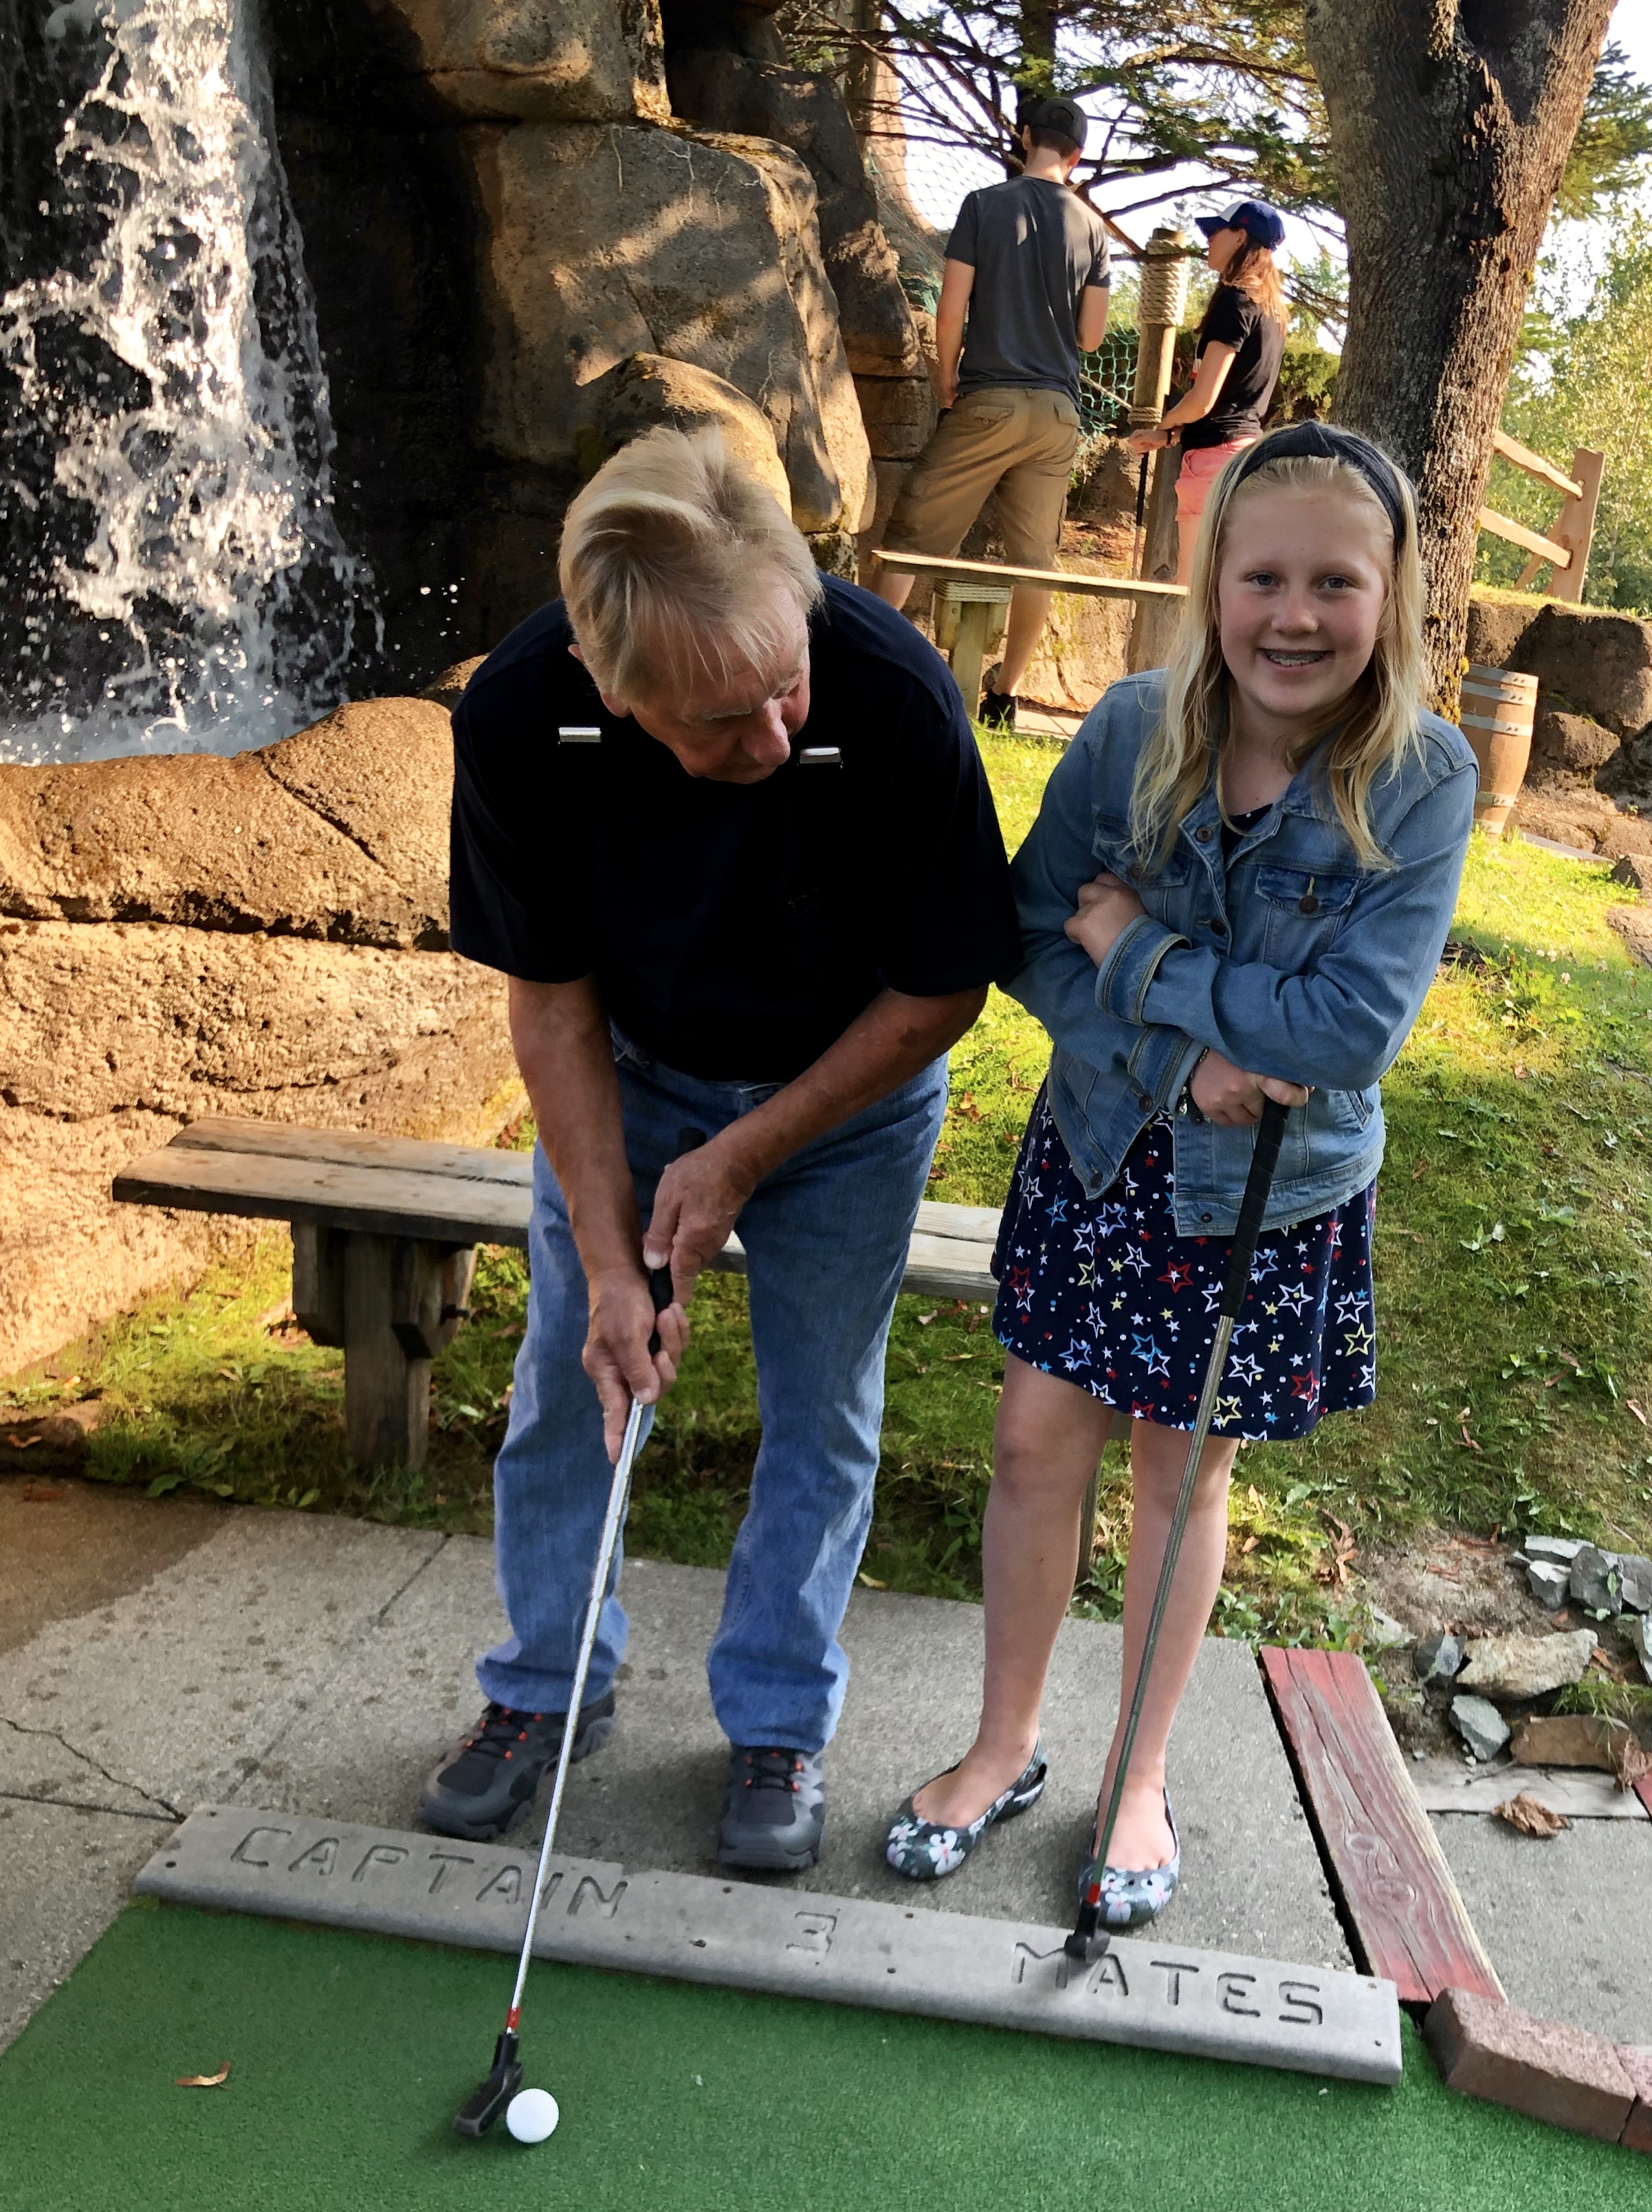 playing mini golf